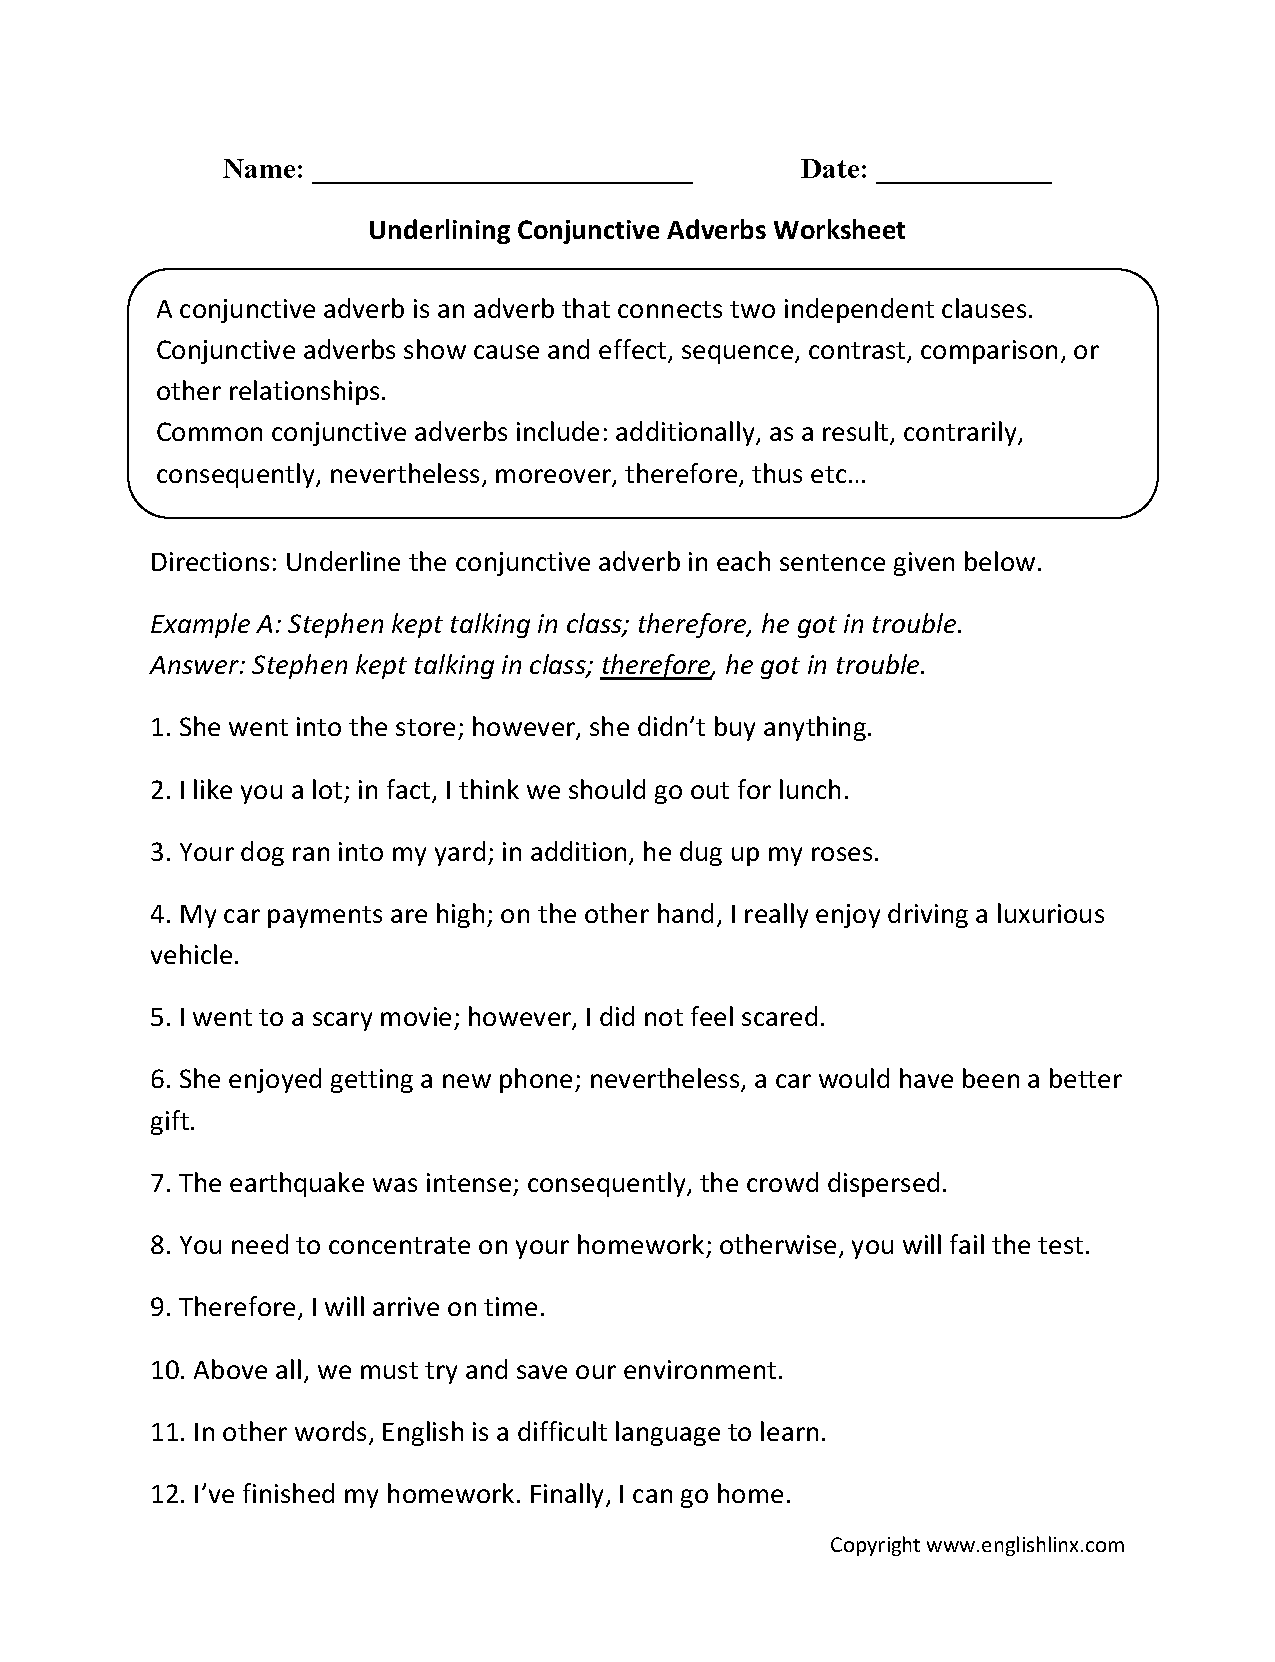 Weirdmailus  Winsome Englishlinxcom  Conjunctions Worksheets With Lovable Worksheet With Appealing Word Wall Worksheets Also Reading Comprehension Worksheets Th Grade Printable Free In Addition Following  Step Directions Worksheet And Operation With Integers Worksheet As Well As Letter D Handwriting Worksheets Additionally Free Printable Th Grade Science Worksheets From Englishlinxcom With Weirdmailus  Lovable Englishlinxcom  Conjunctions Worksheets With Appealing Worksheet And Winsome Word Wall Worksheets Also Reading Comprehension Worksheets Th Grade Printable Free In Addition Following  Step Directions Worksheet From Englishlinxcom